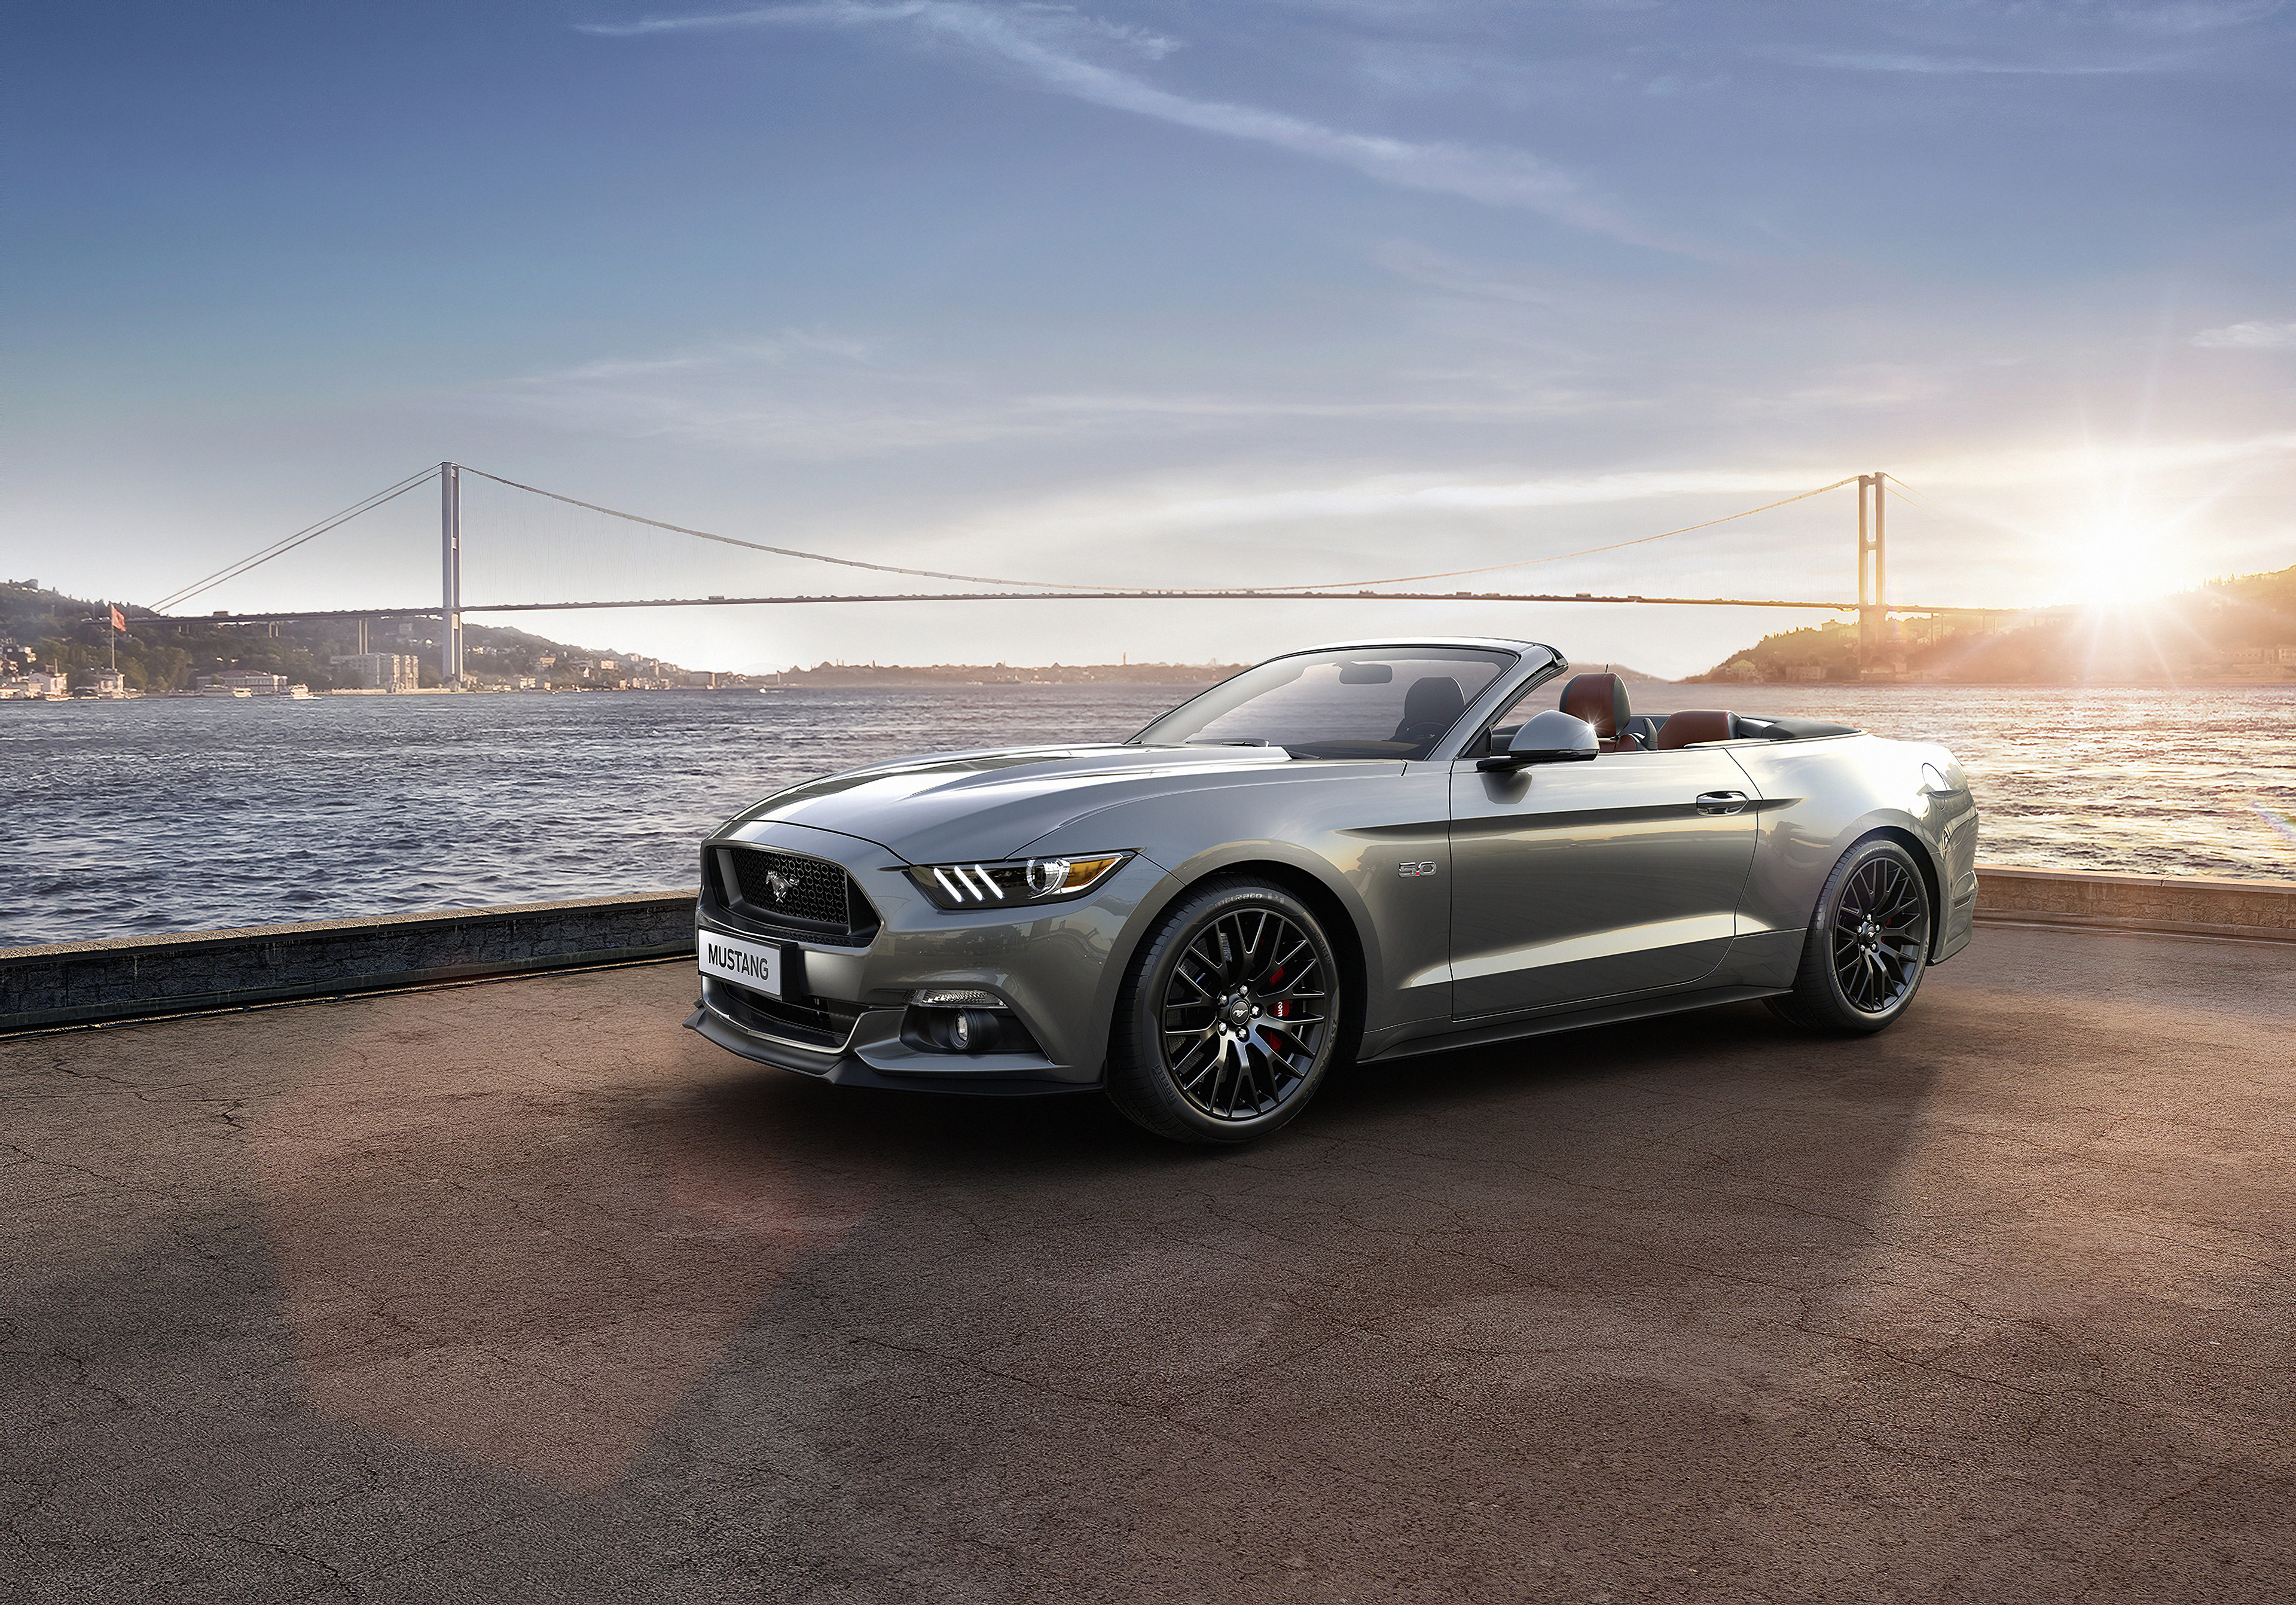 ford mustang new 2019 1574936479 - Ford Mustang New 2019 -